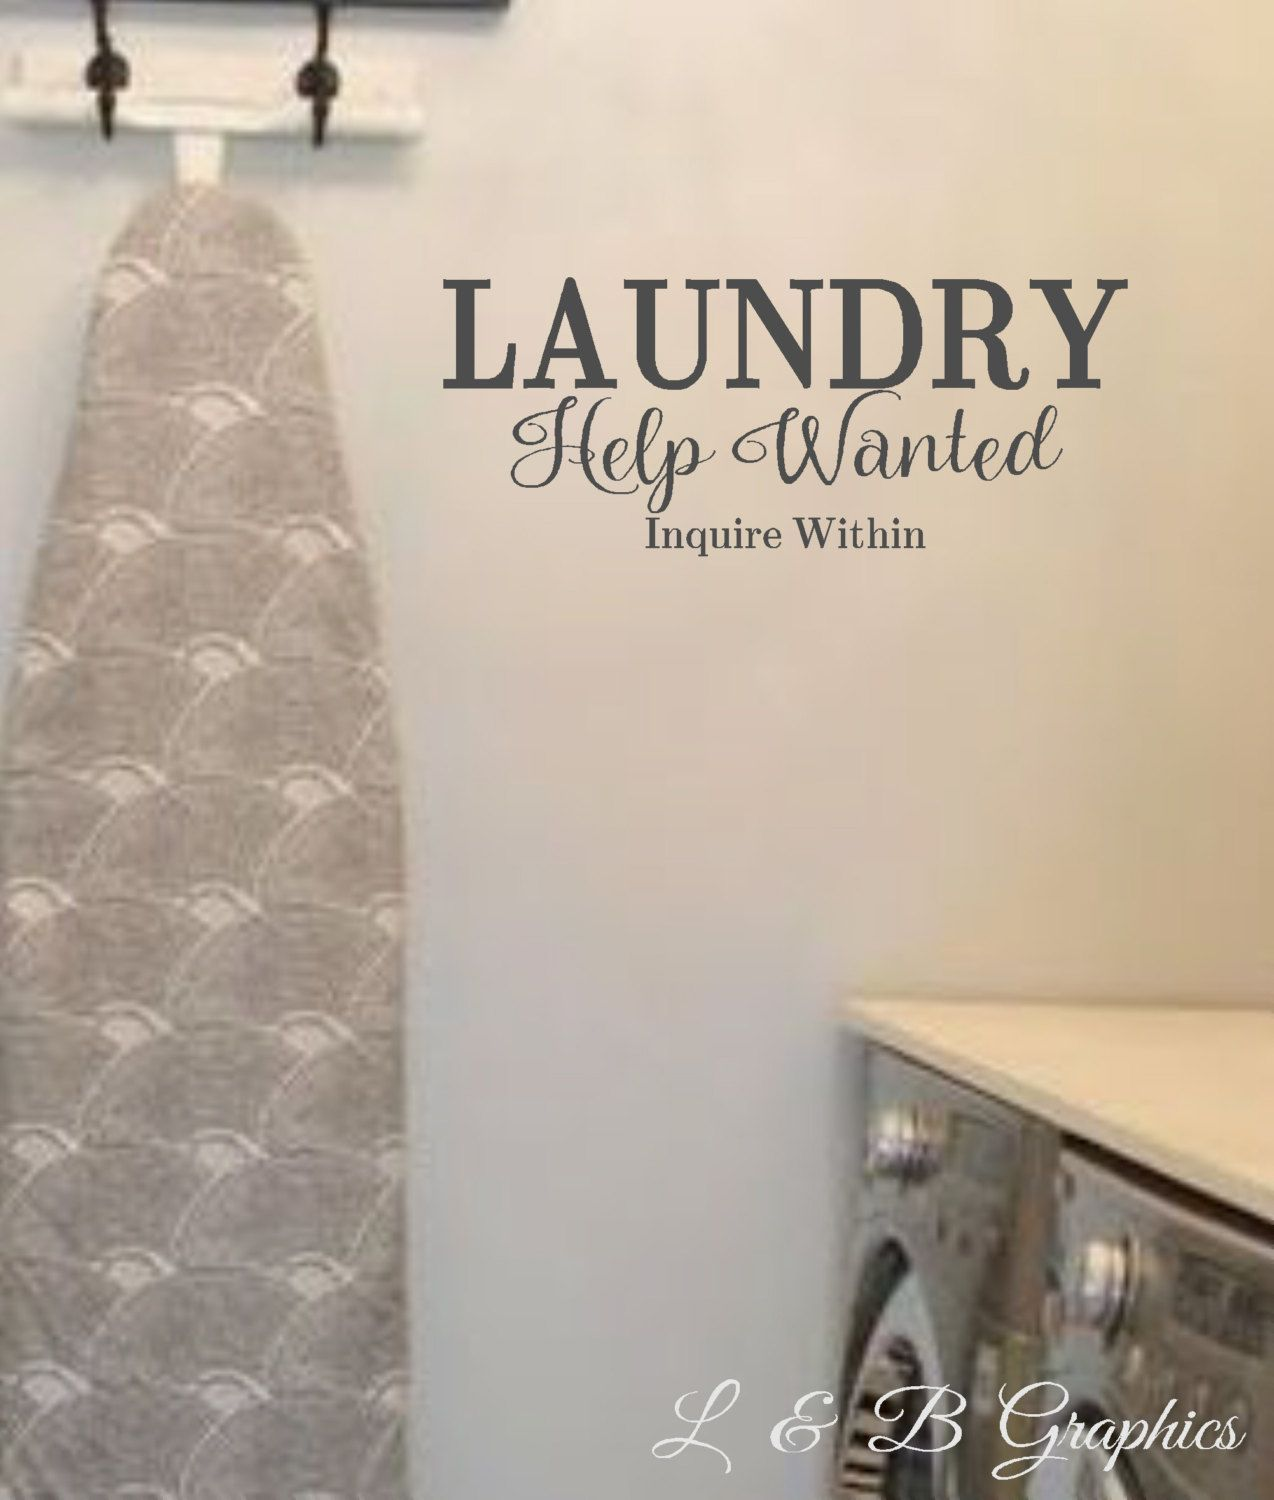 Laundry Room Quotes For Walls Fascinating Laundry Help Wanted Vinyl Wall Decal Laundry Room Decor Humor Review